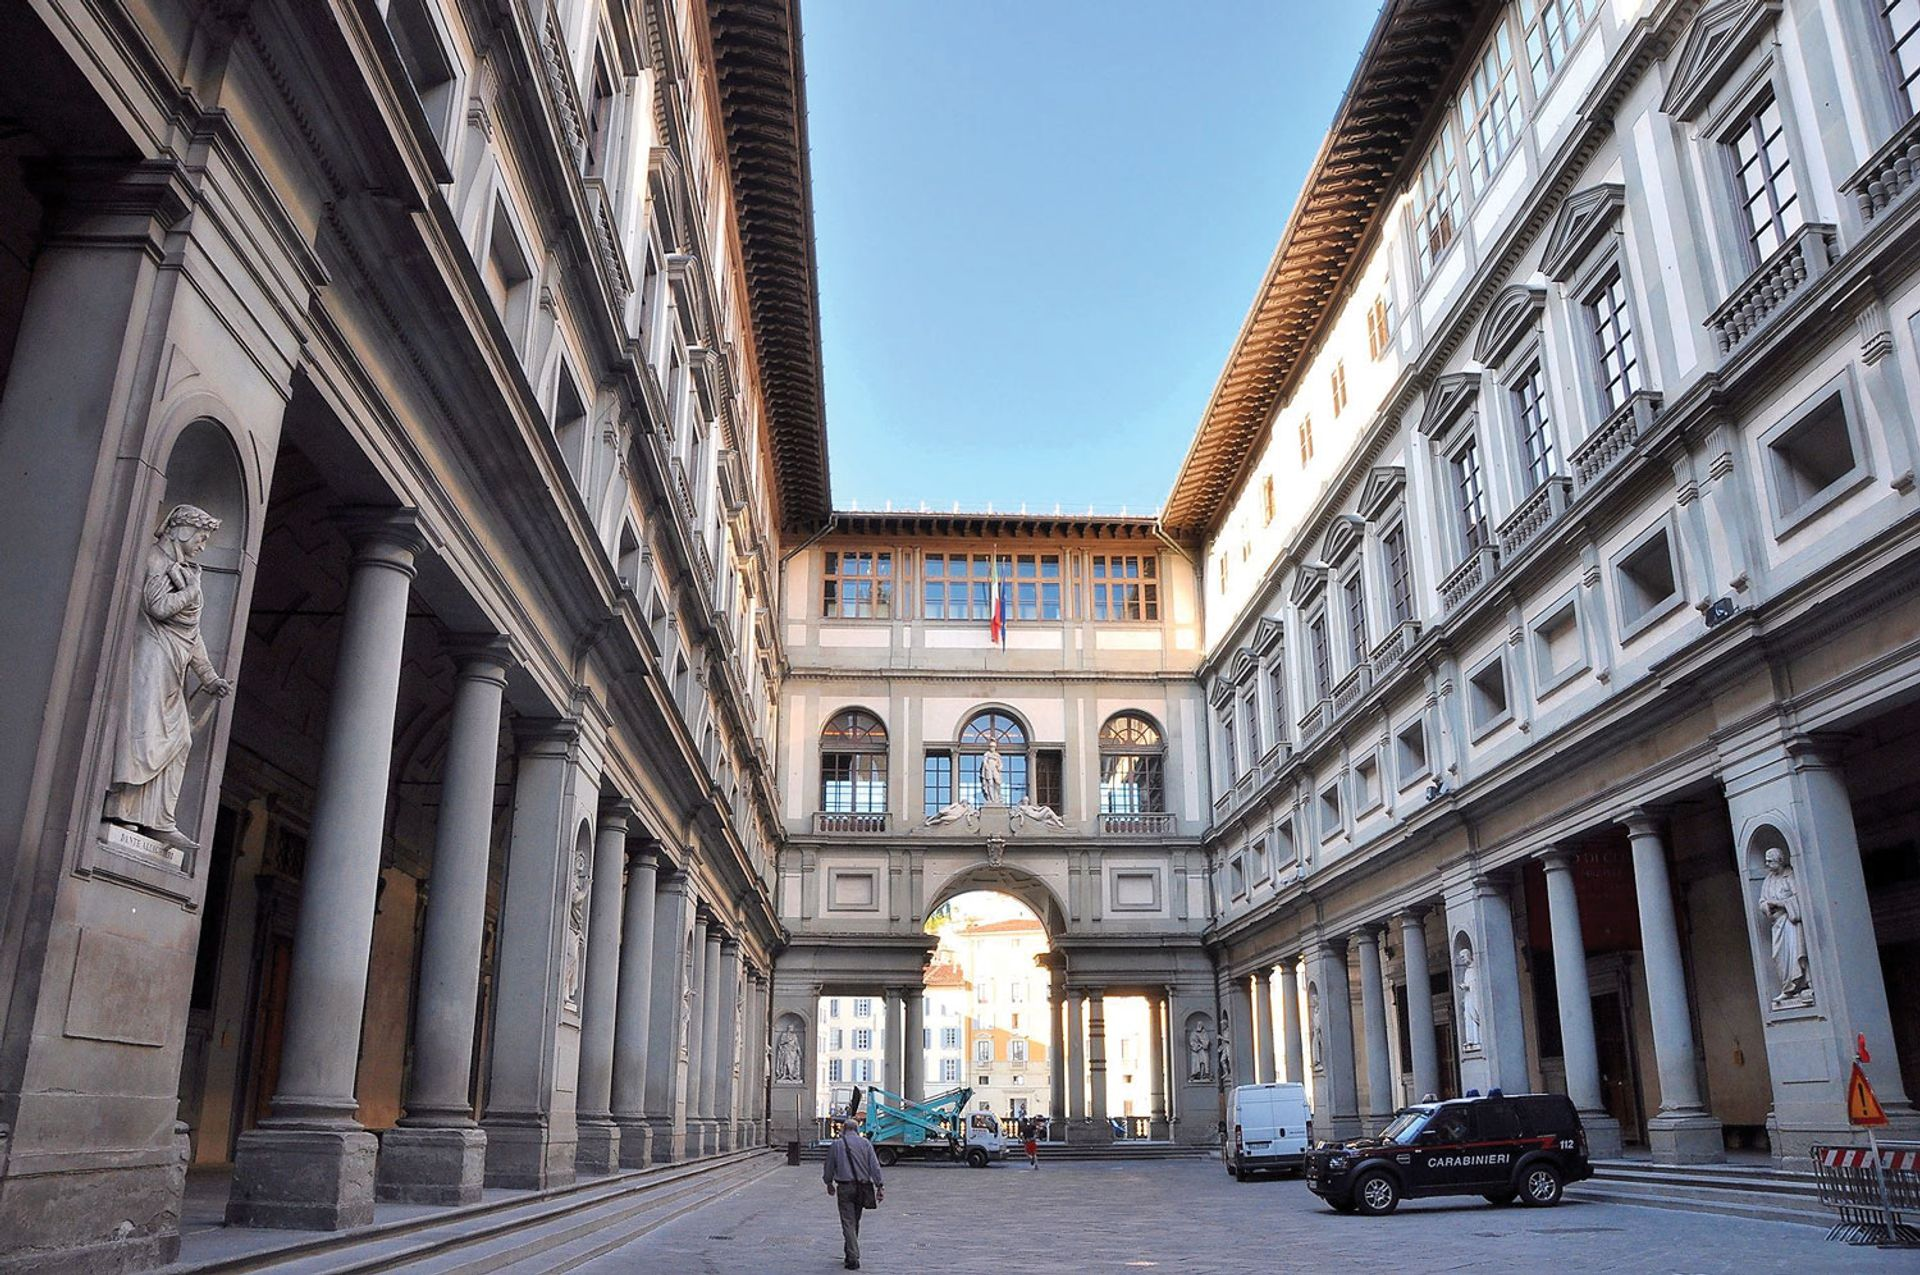 The Uffizi Galleries in Florence, one of the world's most popular museums, has missed out on an estimated €10m in earnings over the Easter season